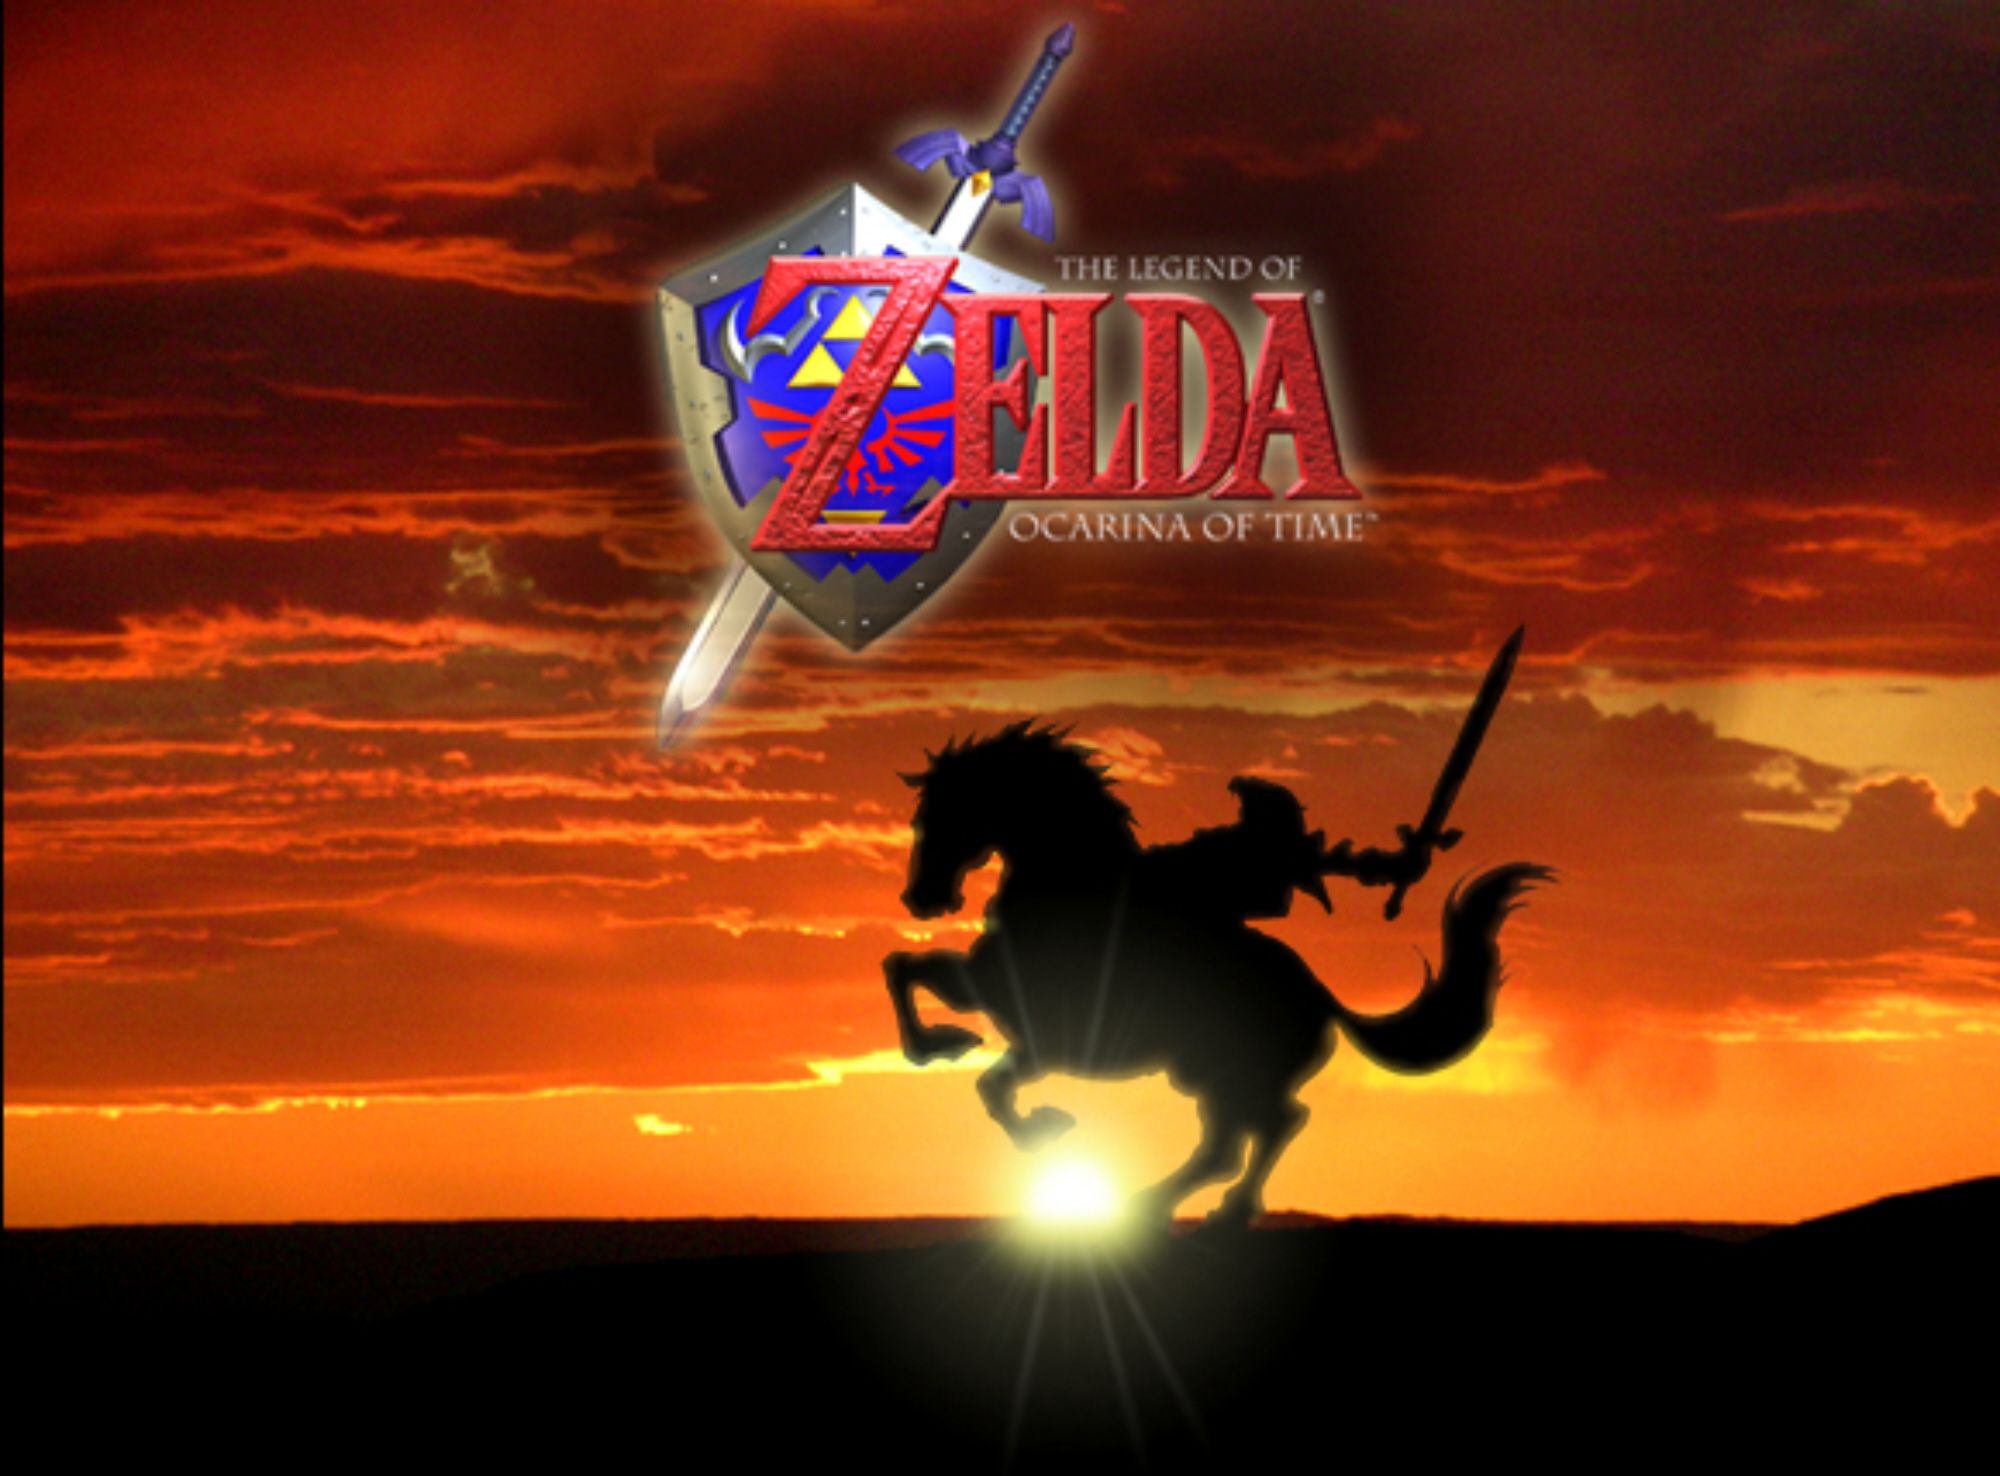 Hd Quality The Legend Of Zelda Ocarina Of Time Wallpaper 6 Game